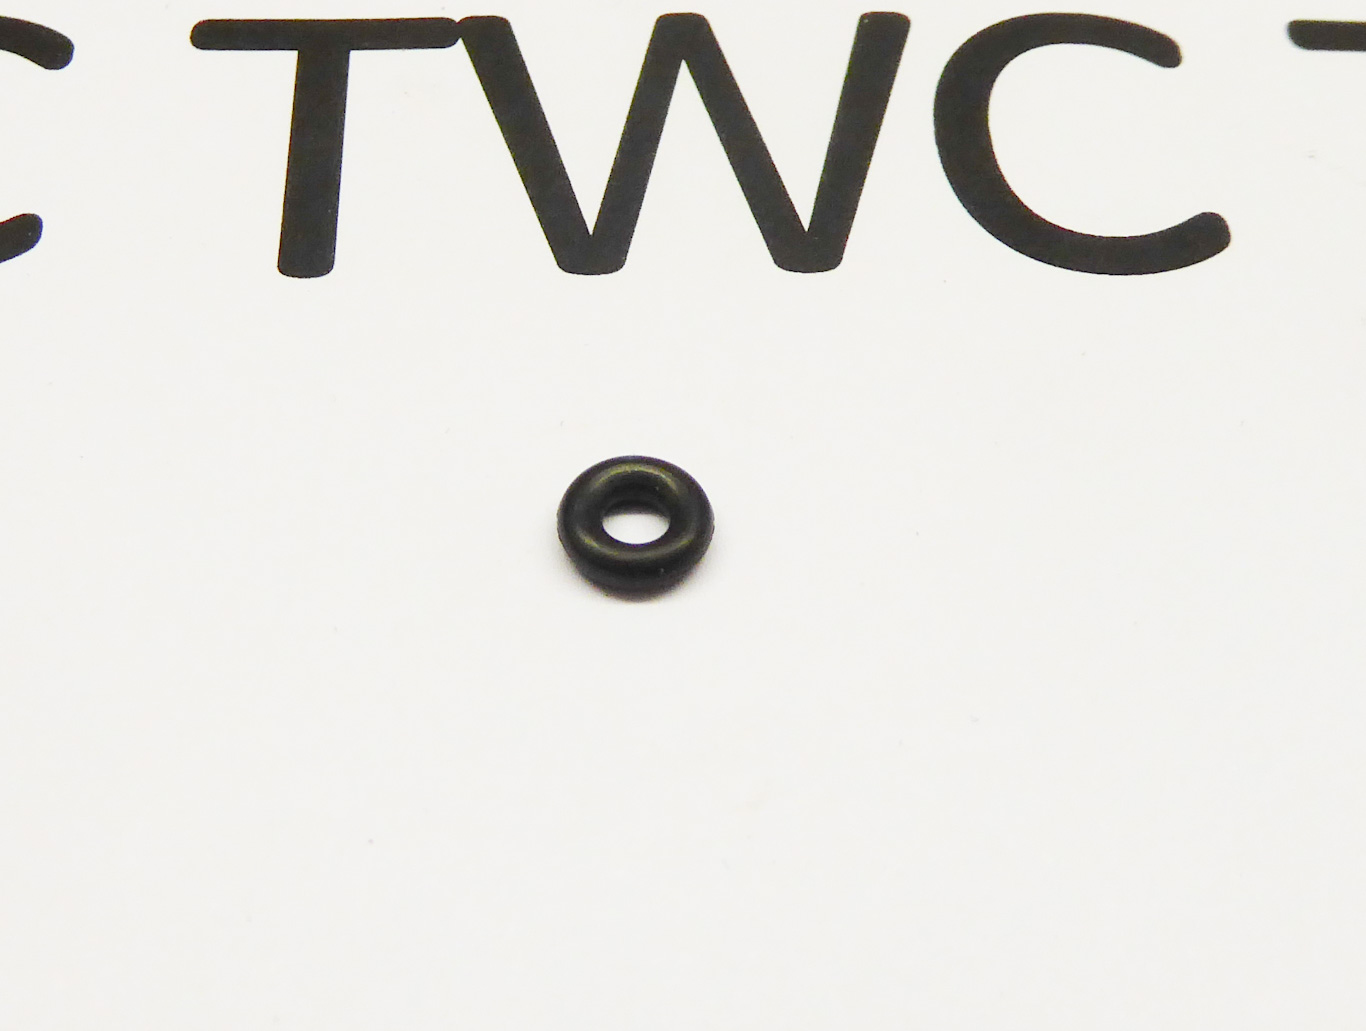 Chassis pin spacer - Large